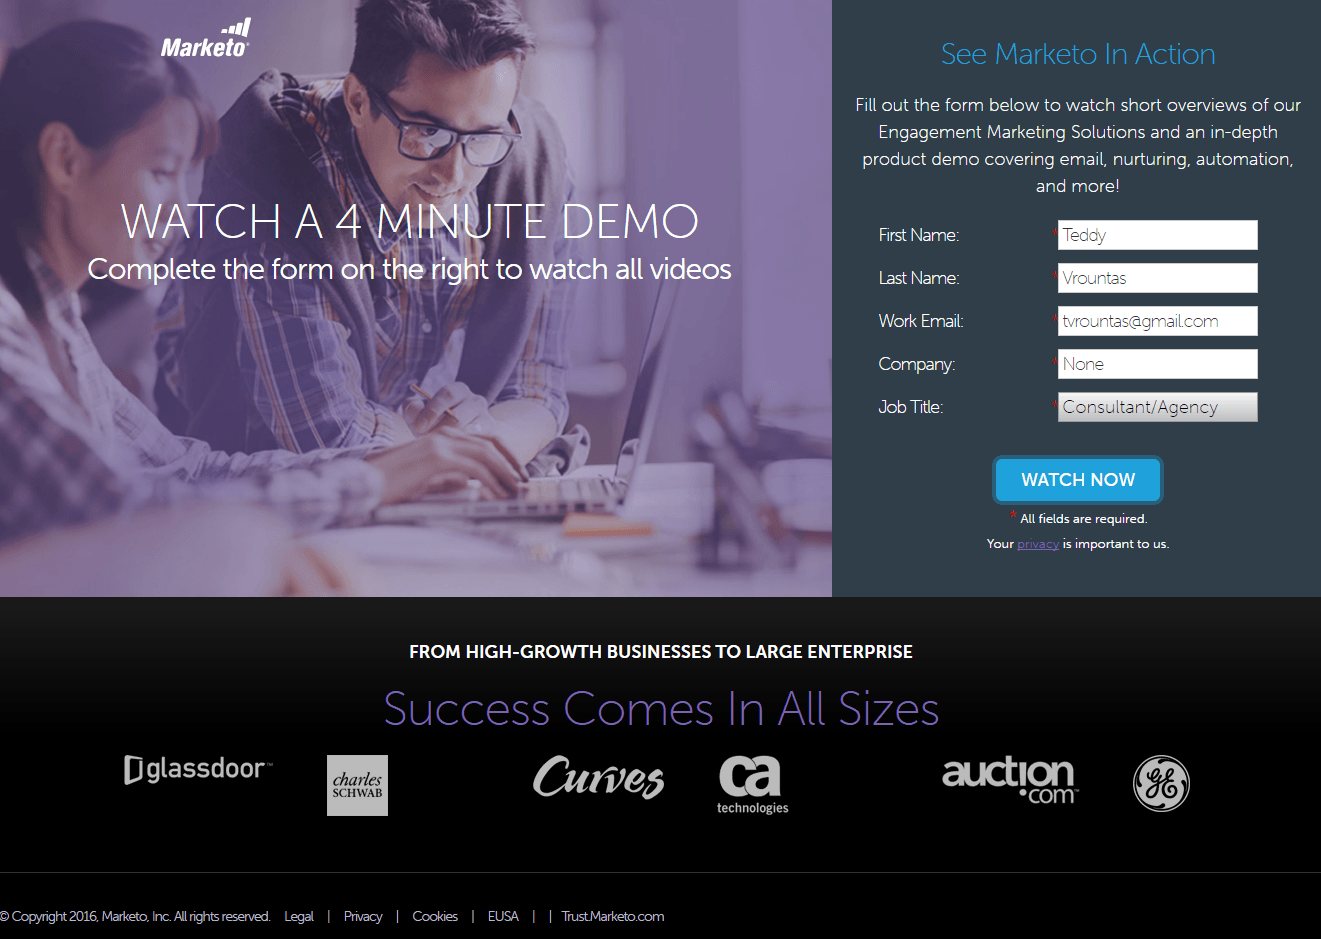 This picture shows how Marketo uses a YouTube landing page to generate demo sign ups and new sales.